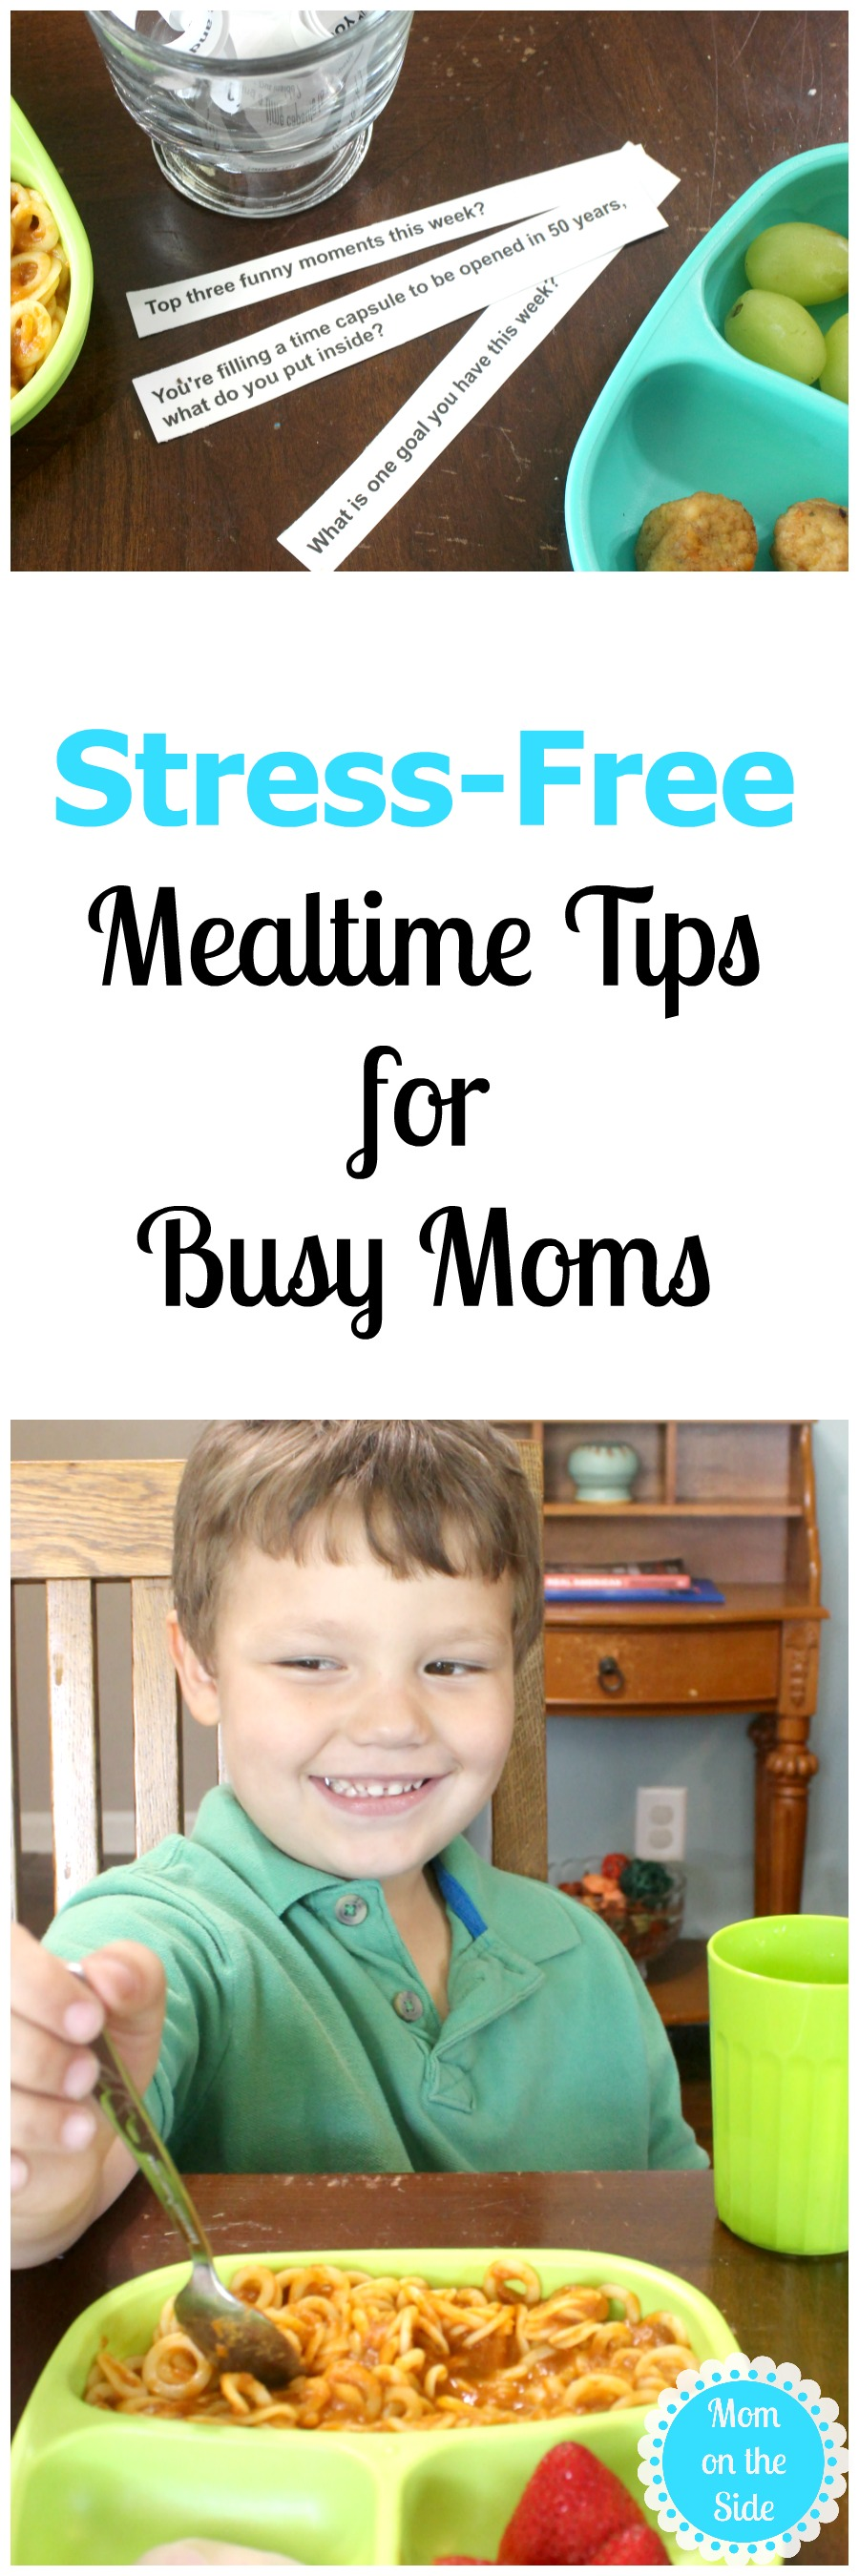 The best stress-free mealtime tips for busy moms to sane during the school year!